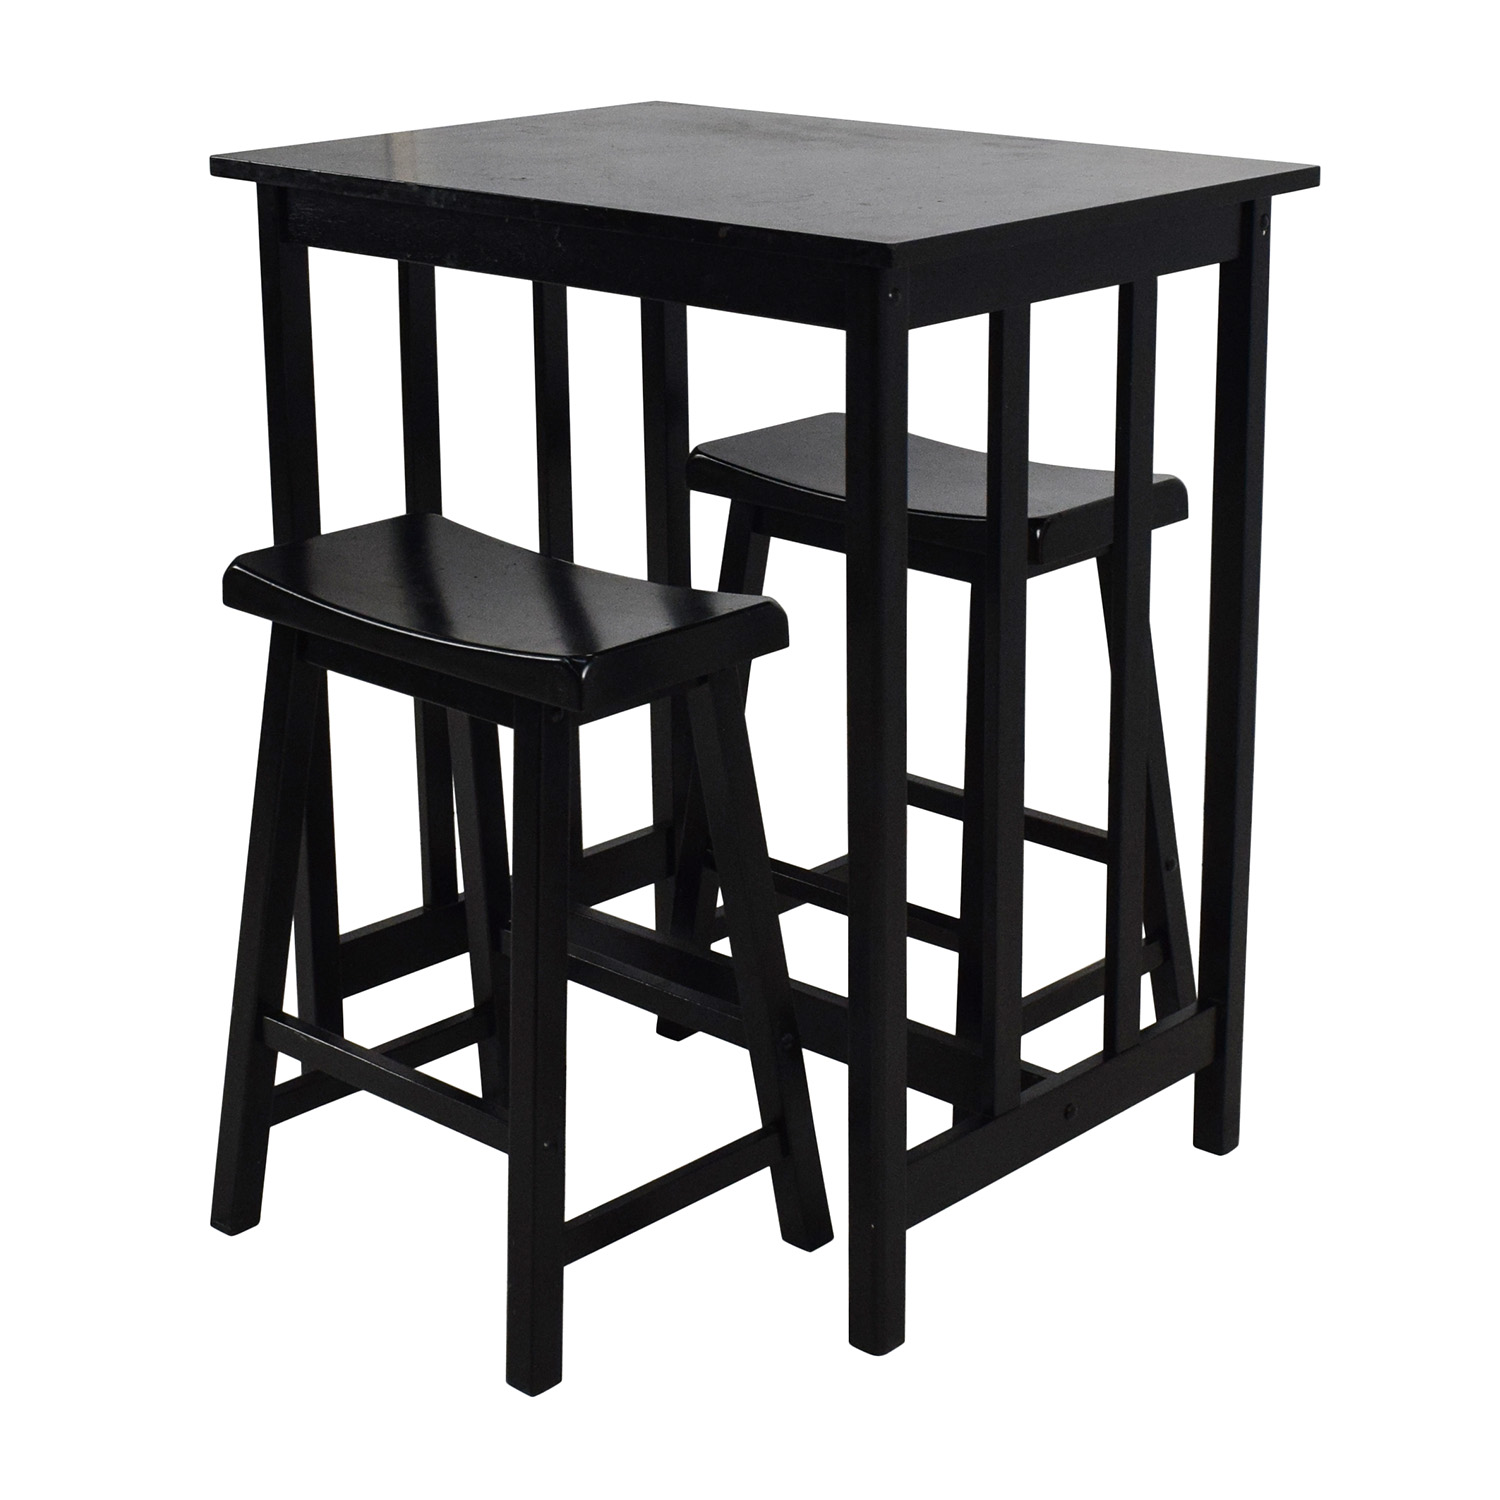 66 off tall kitchen table set tables for Tall dinner table set